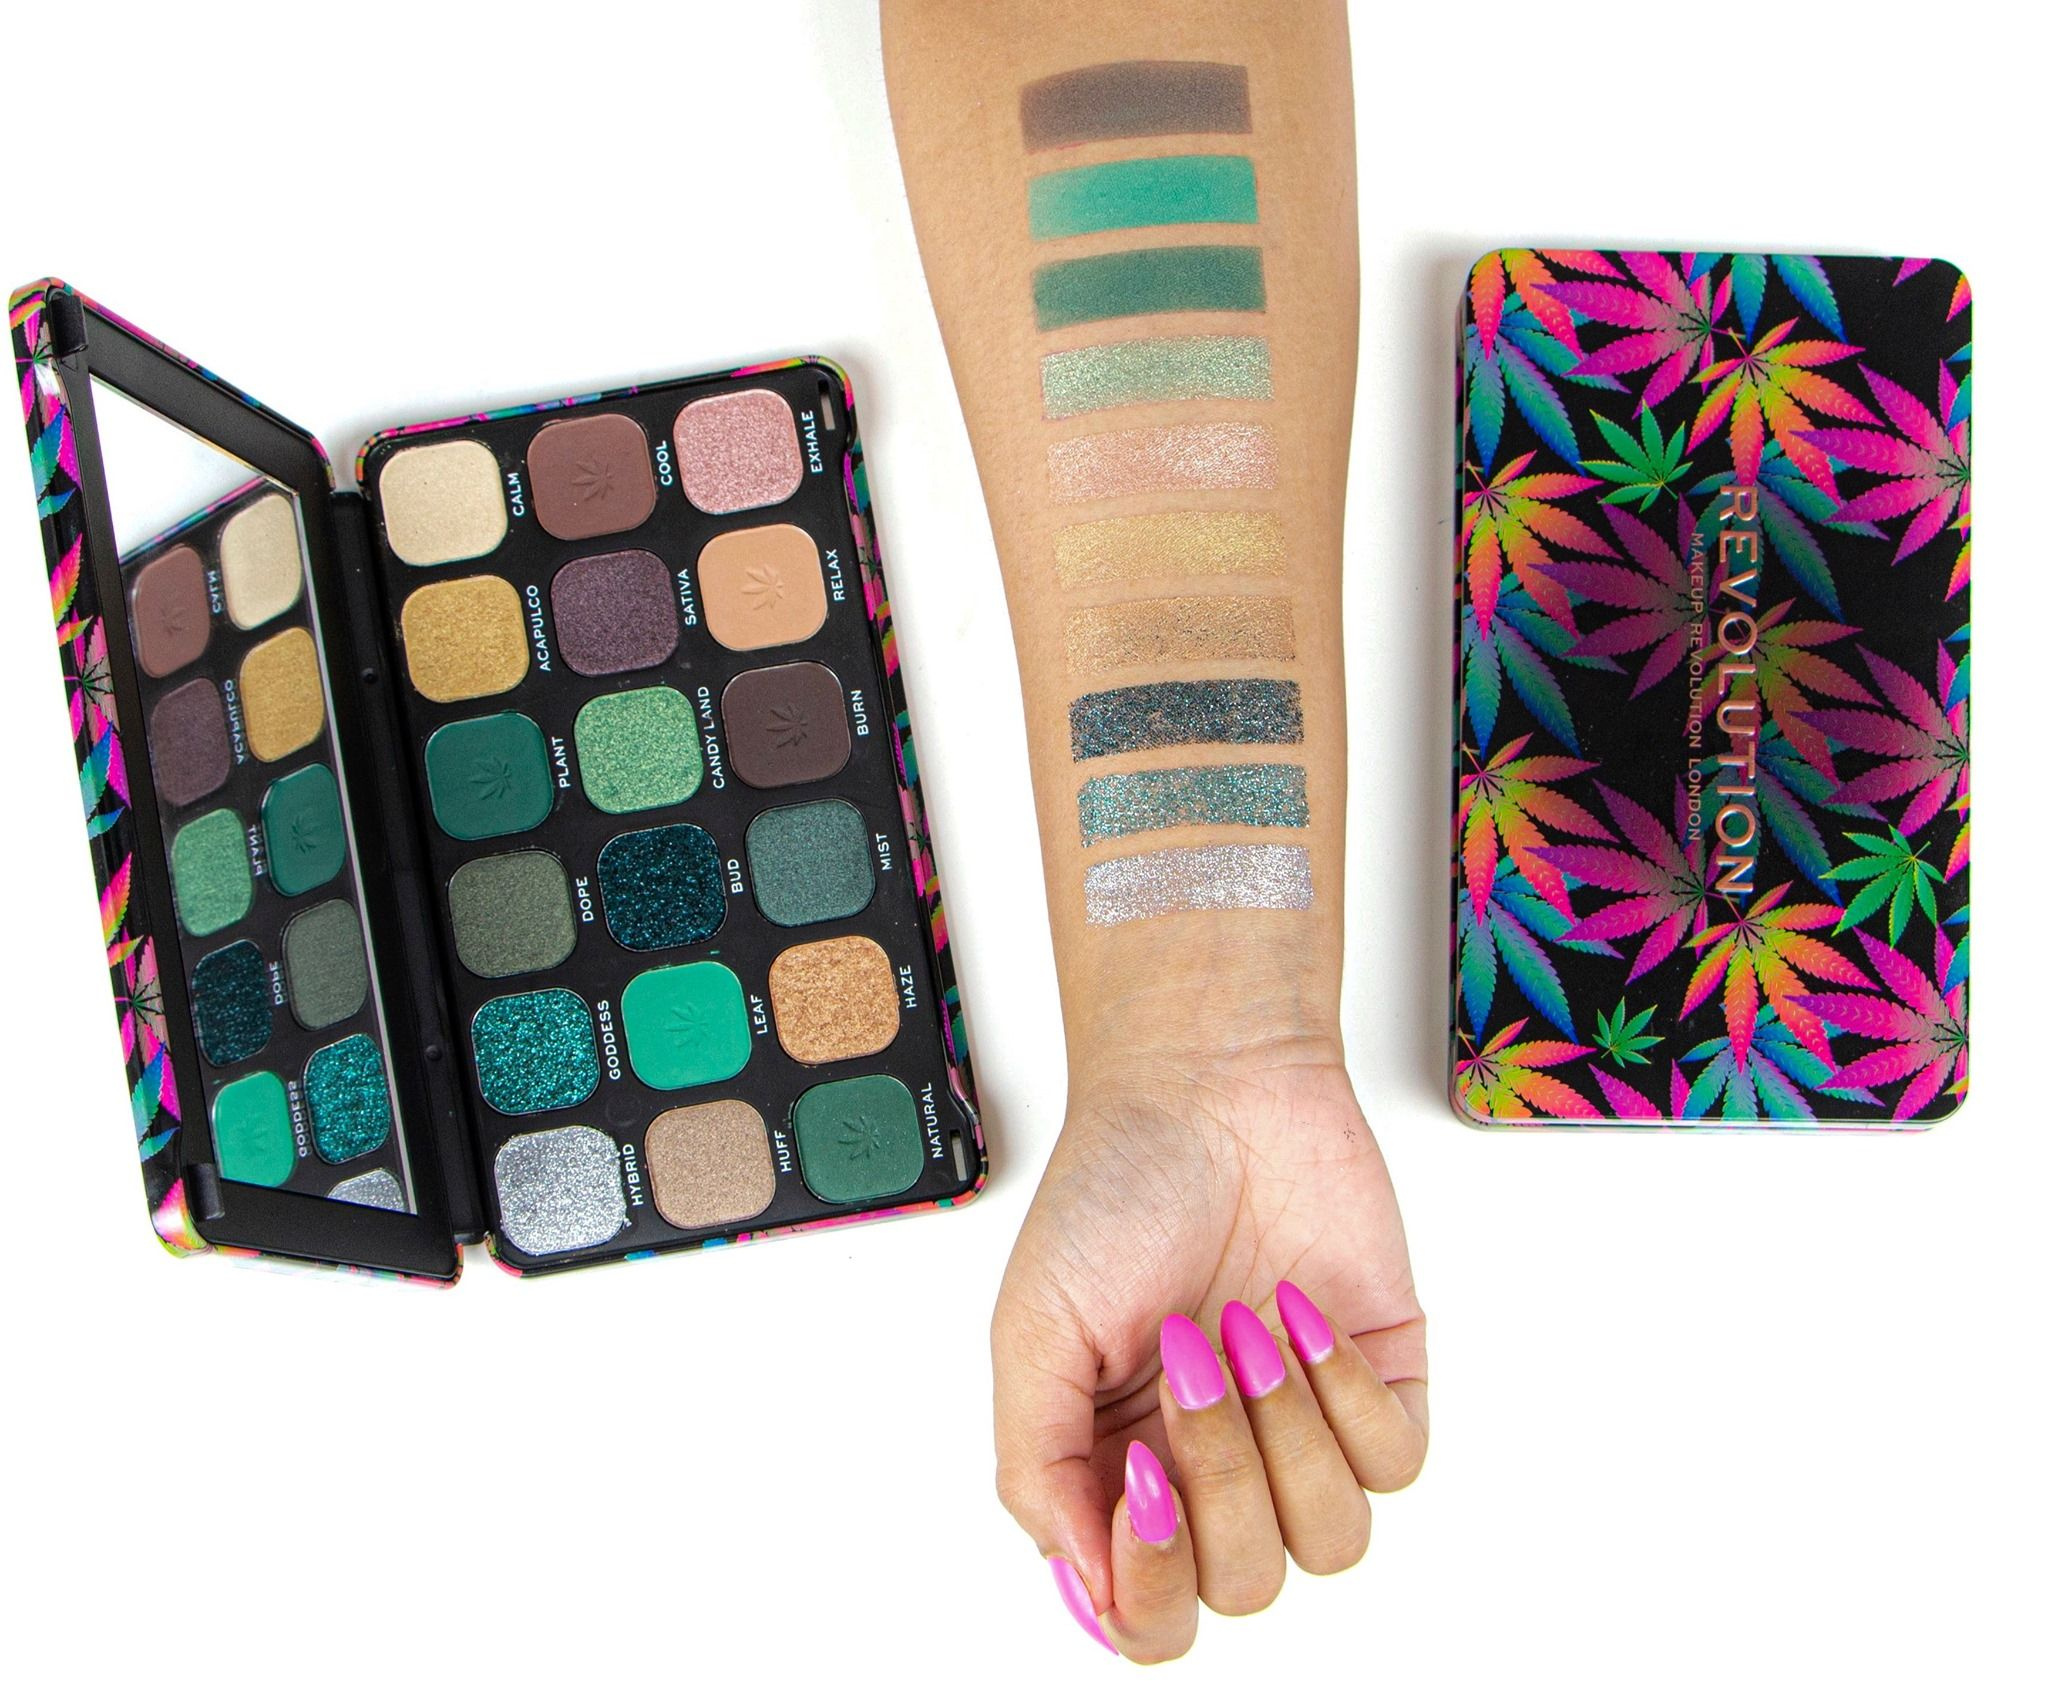 Forever Flawless Chilled Palette Only 15 ultabeauty